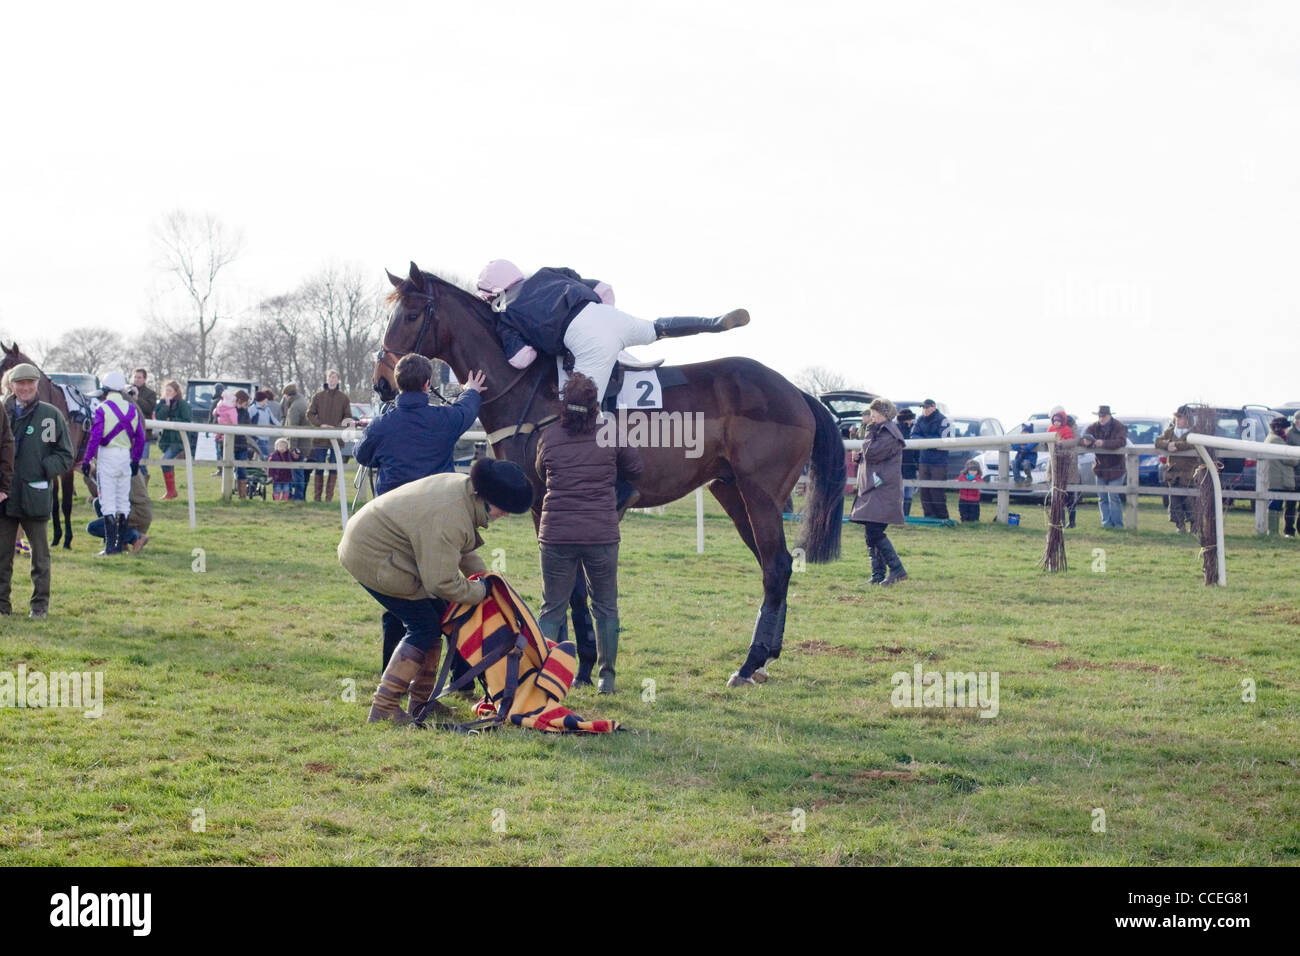 A  Thoroughbred horse Equus ferus caballus in the collecting ring at the Heythrop Hunt point to point - Stock Image